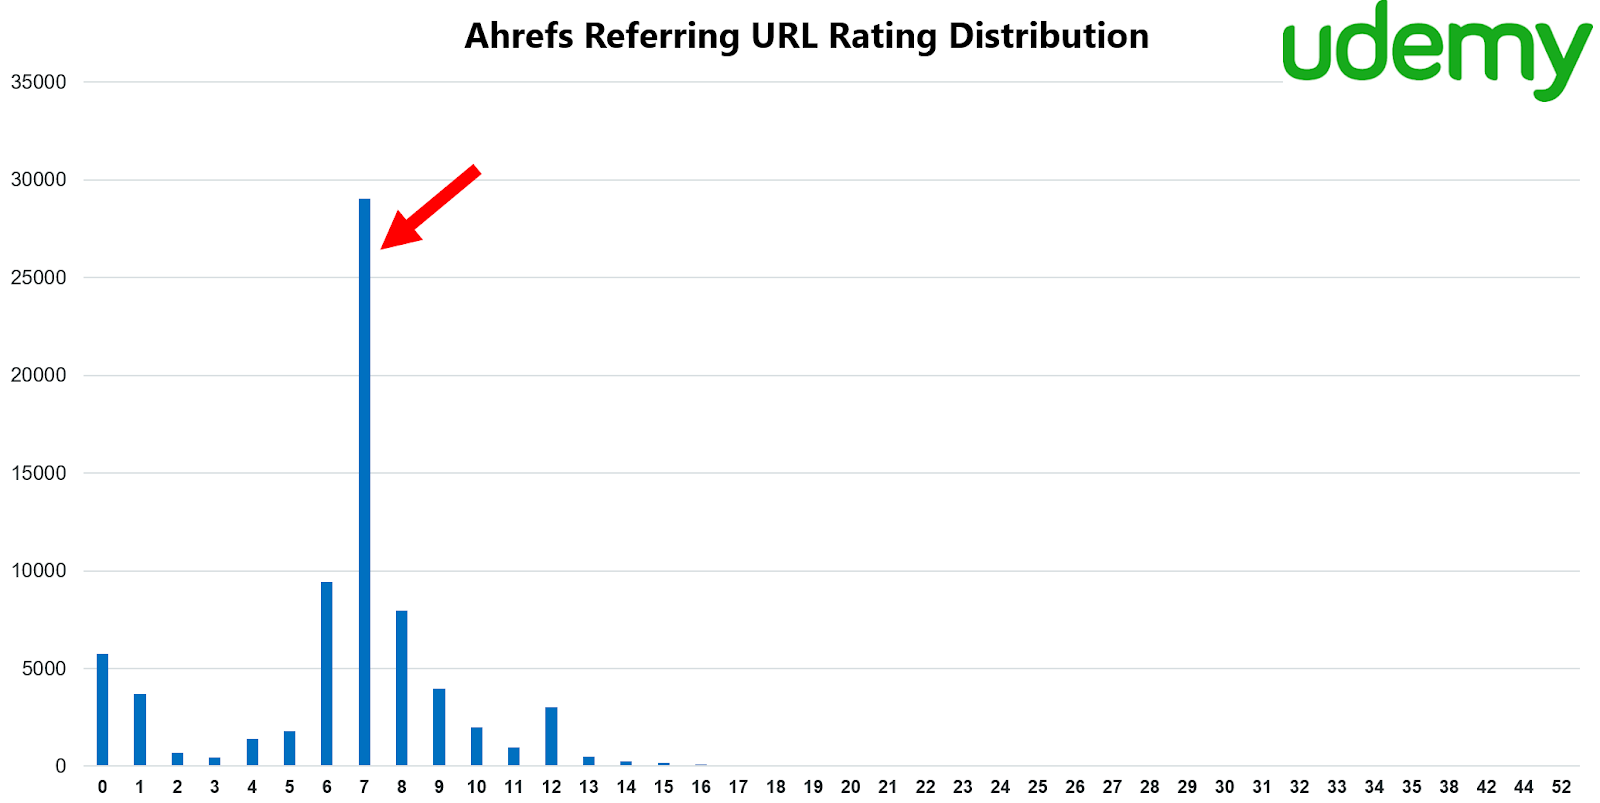 Ahrefs Referring URL Rating Distribution - Udemy